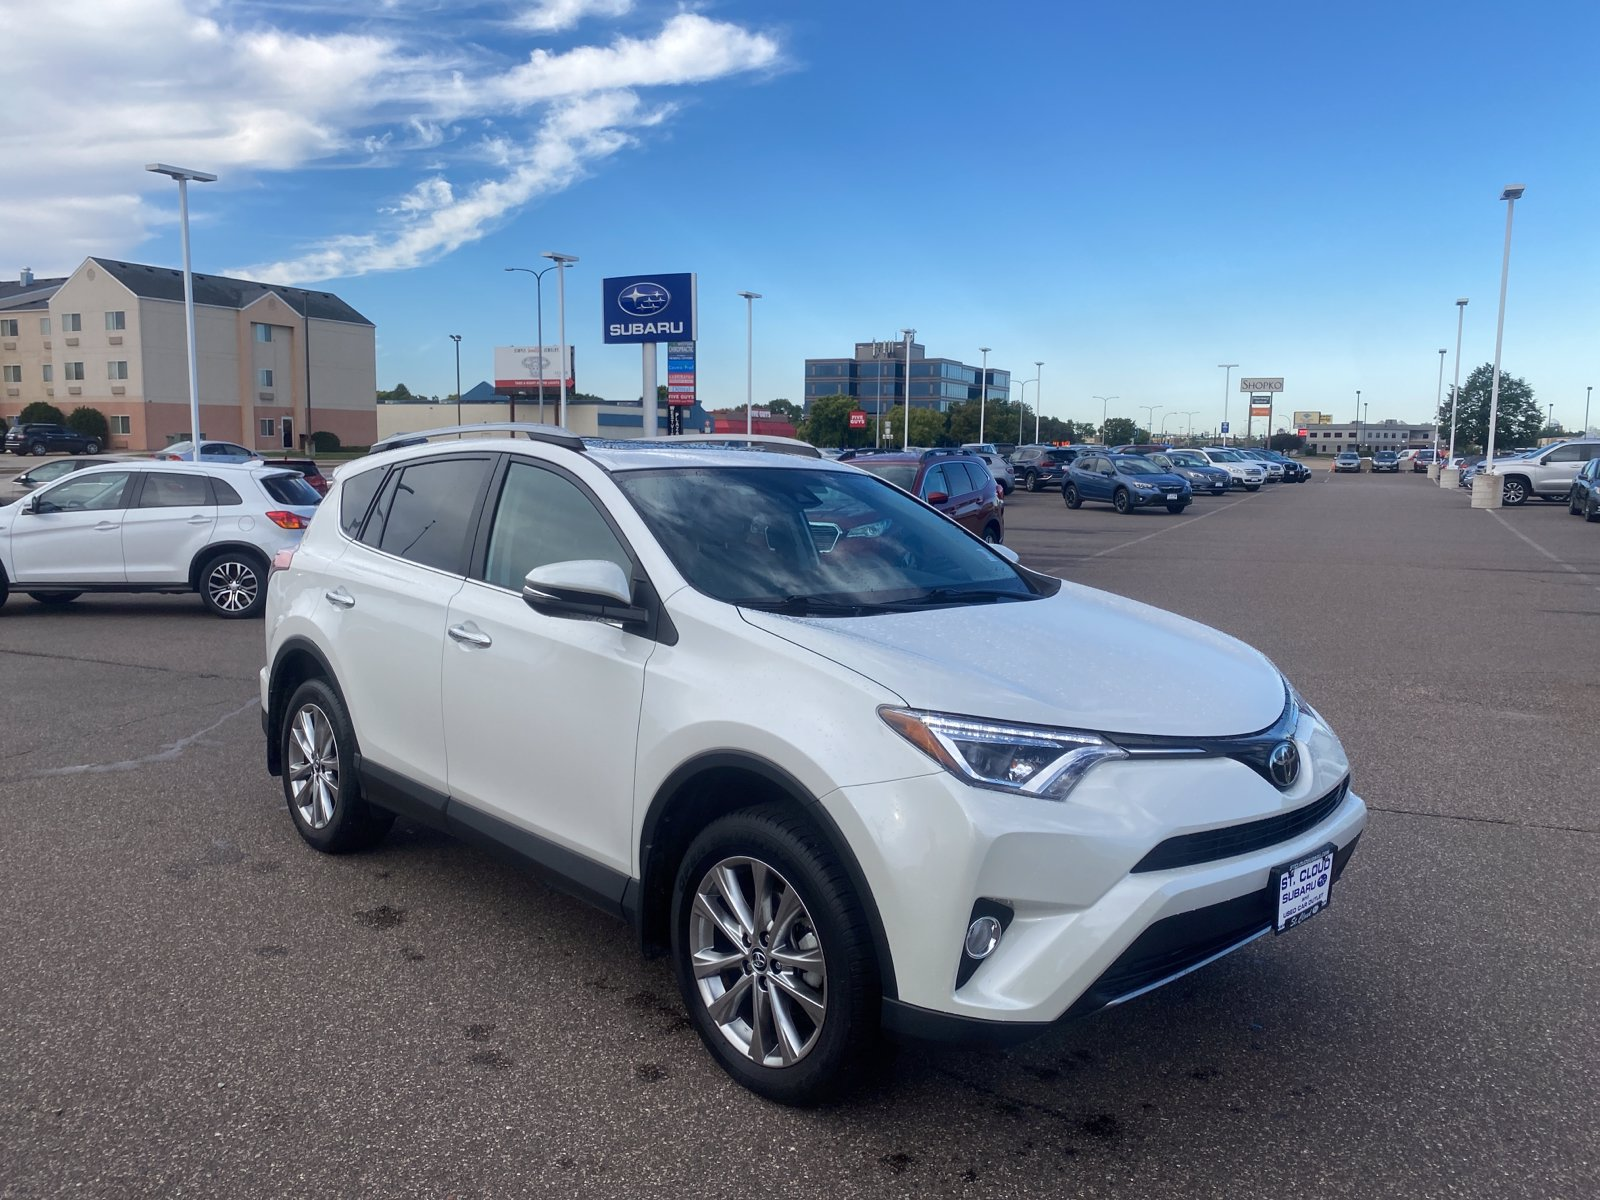 Used 2018 Toyota RAV4 Limited with VIN 2T3DFREV0JW855965 for sale in Saint Cloud, Minnesota